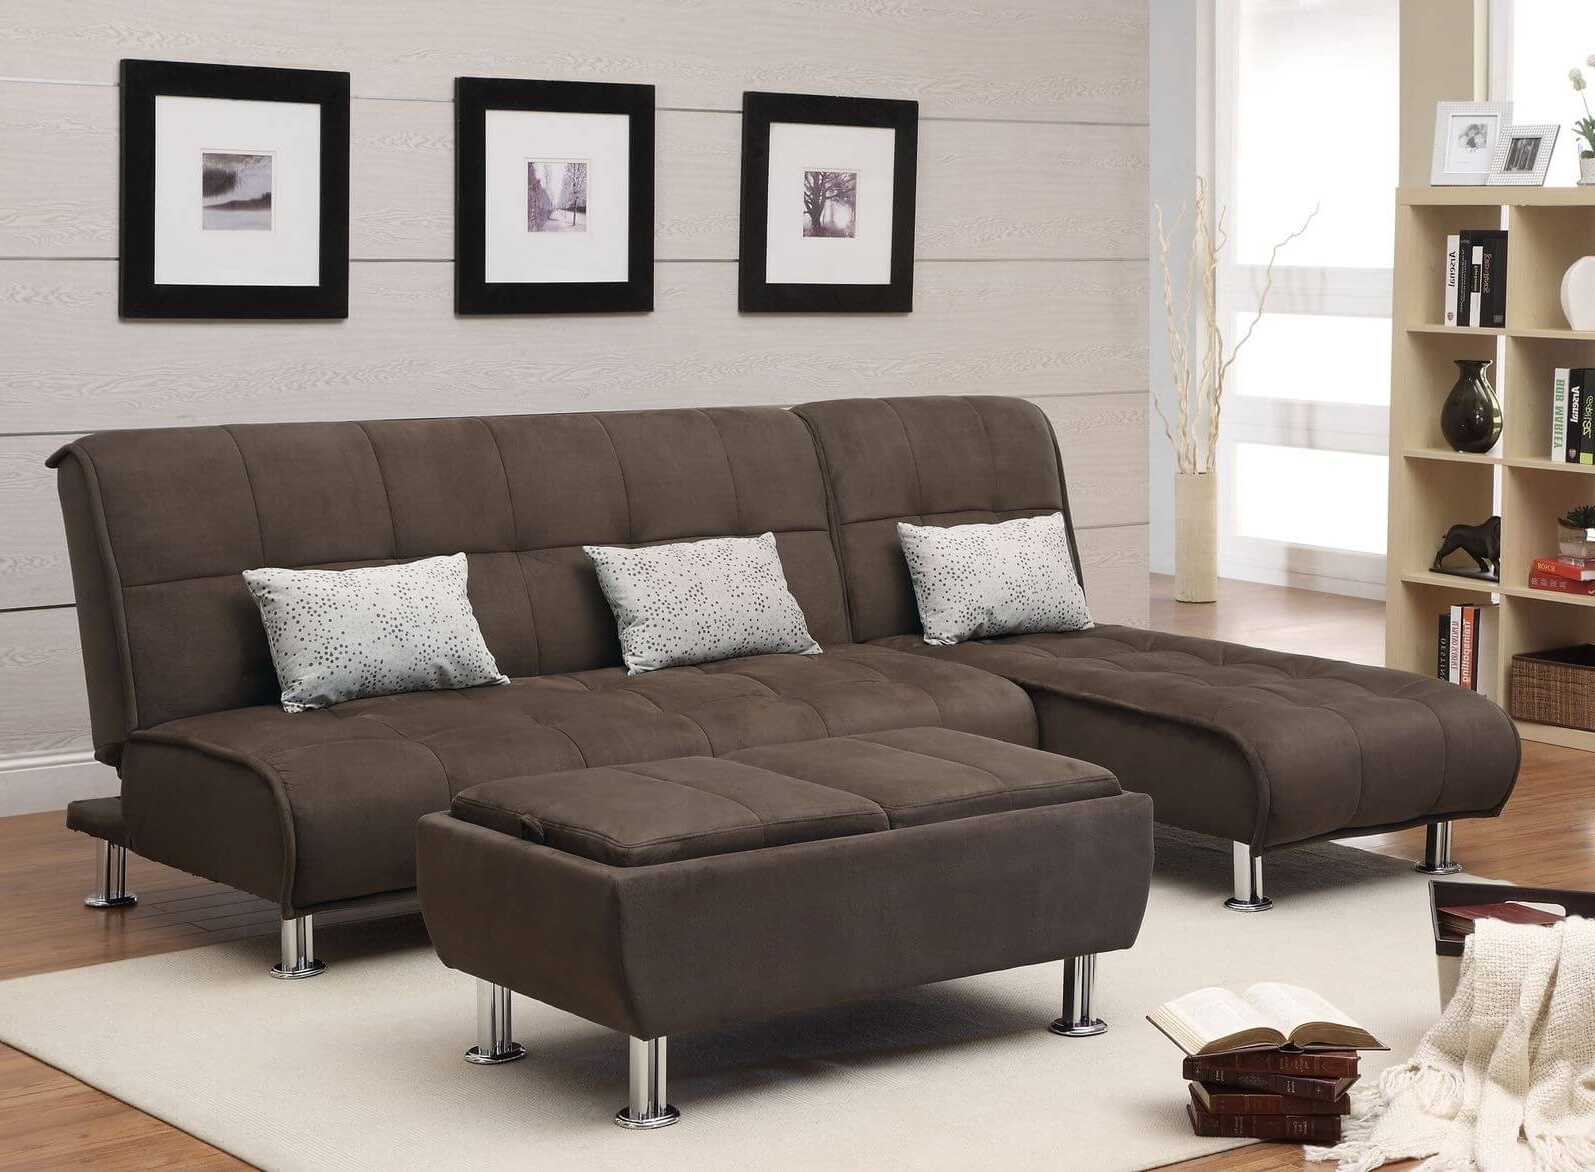 50 Beautiful Living Rooms With Ottoman Coffee Tables Within Popular Camel Colored Sectional Sofas (View 1 of 20)